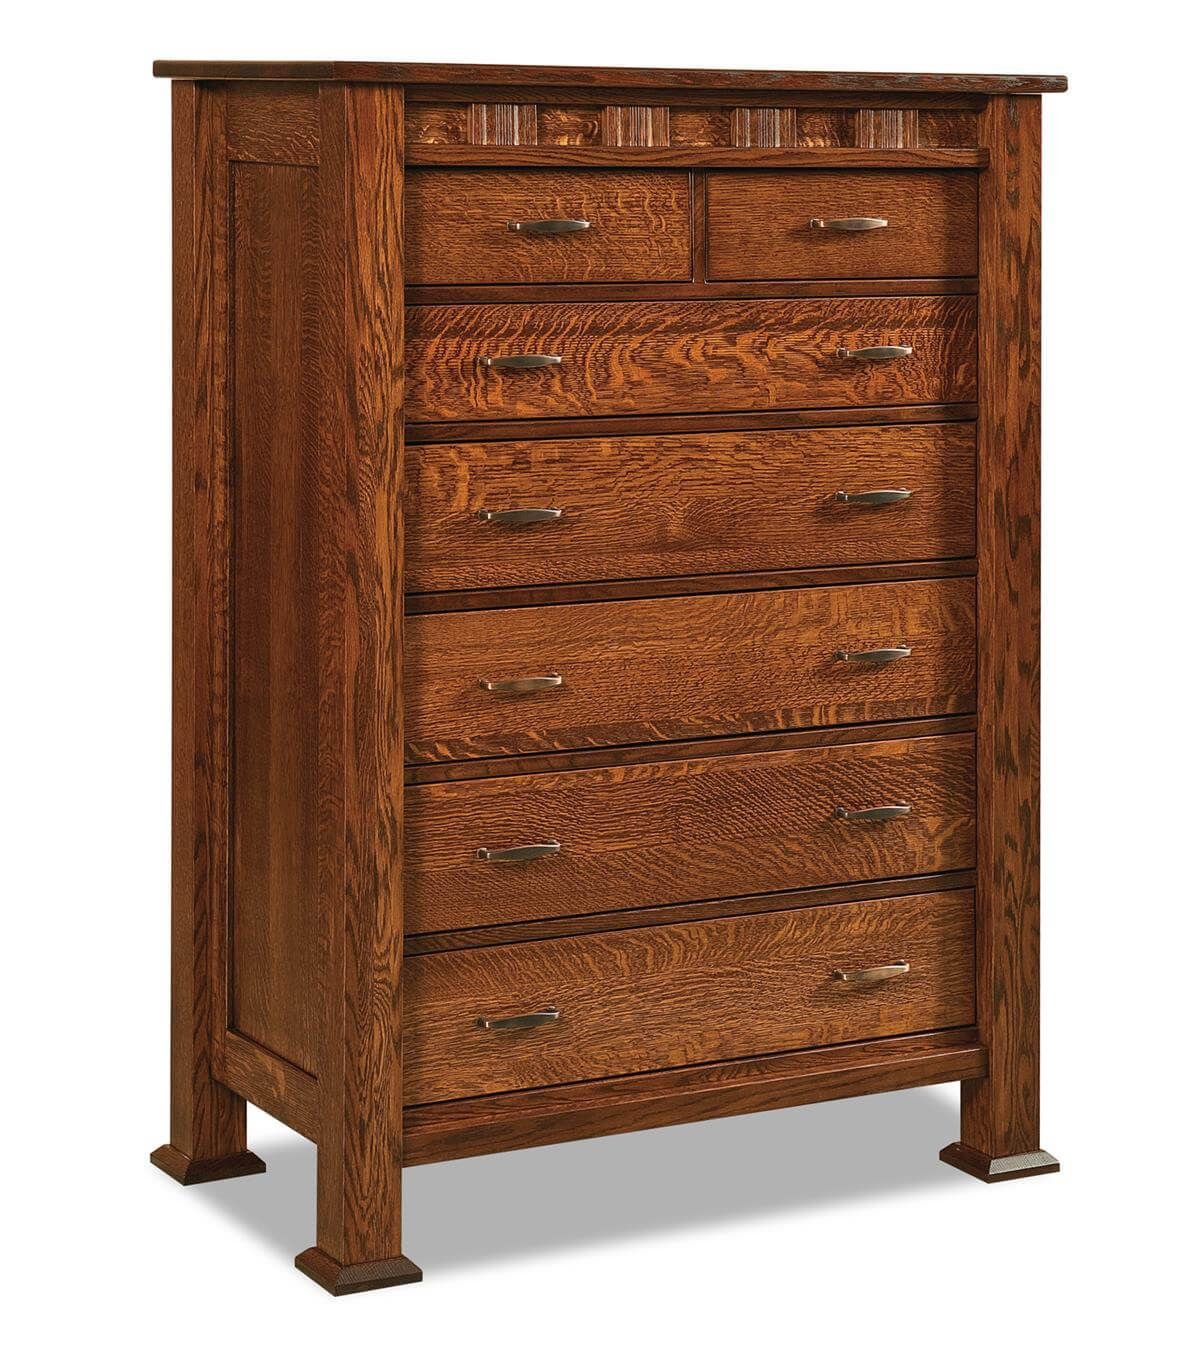 Tuskegee Chest of Drawers